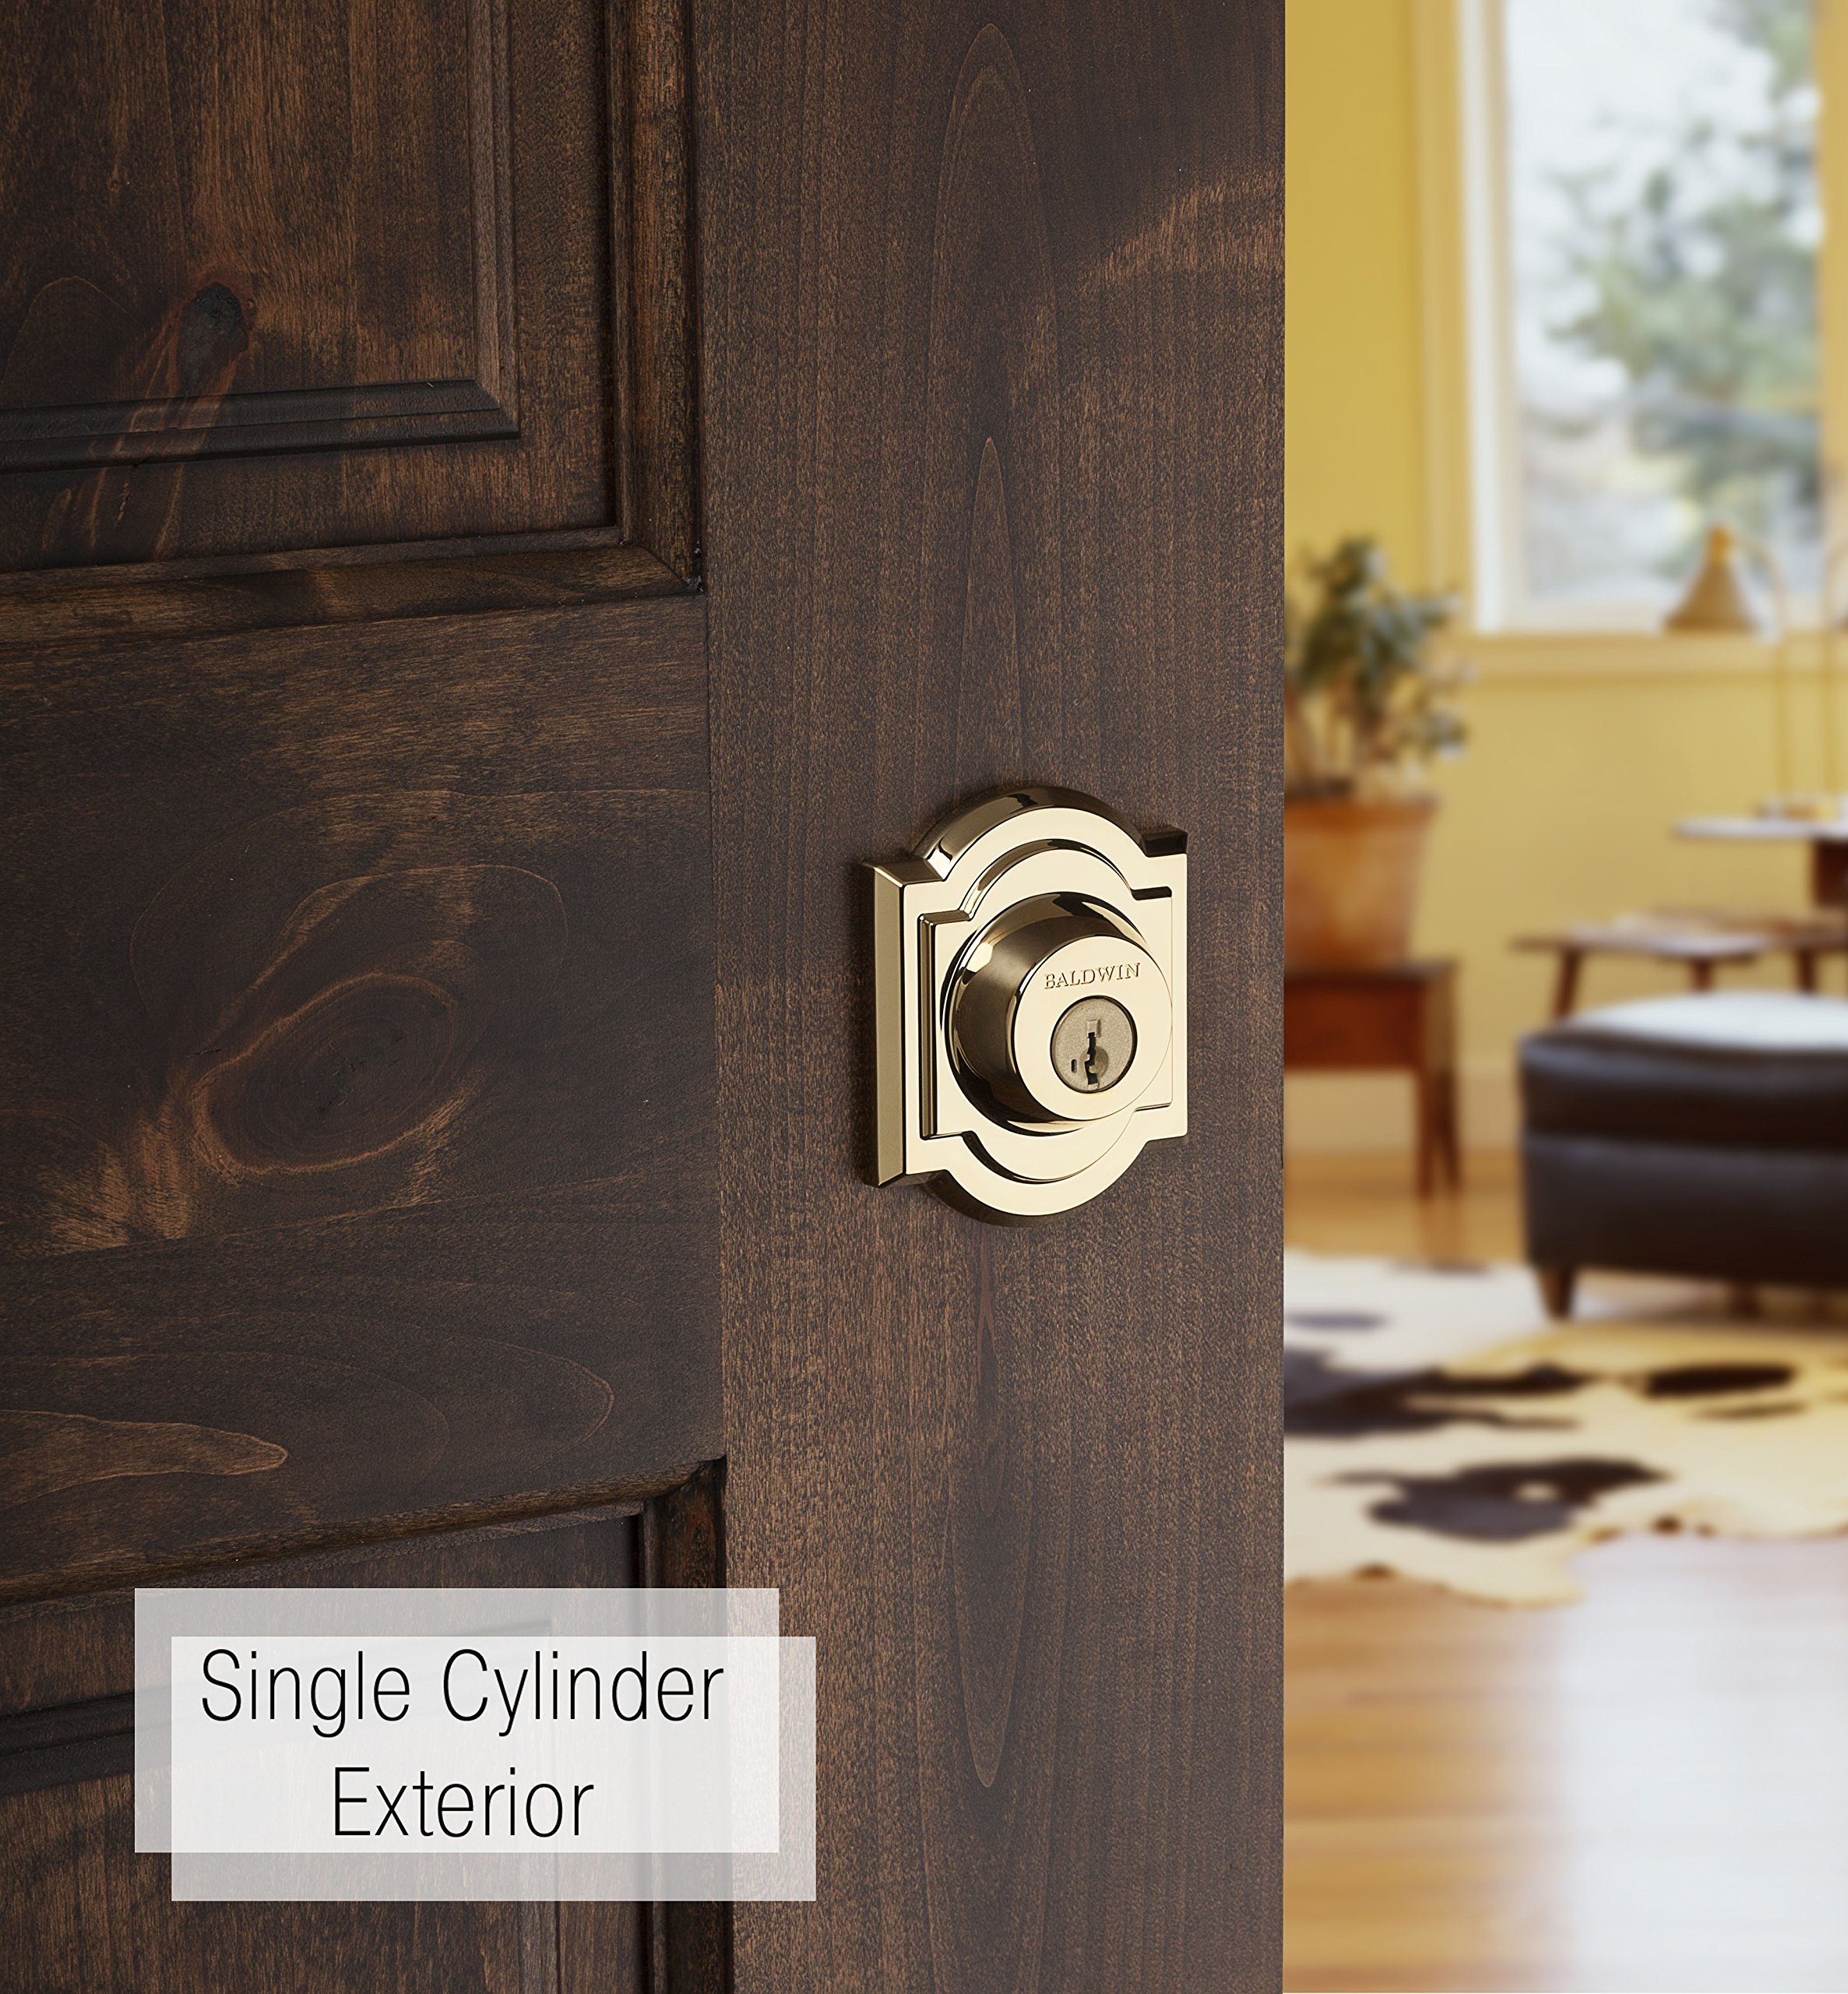 Baldwin Prestige 380 Arched Single Cylinder Deadbolt Featuring SmartKey in Lifetime Polished Brass by Baldwin (Image #2)